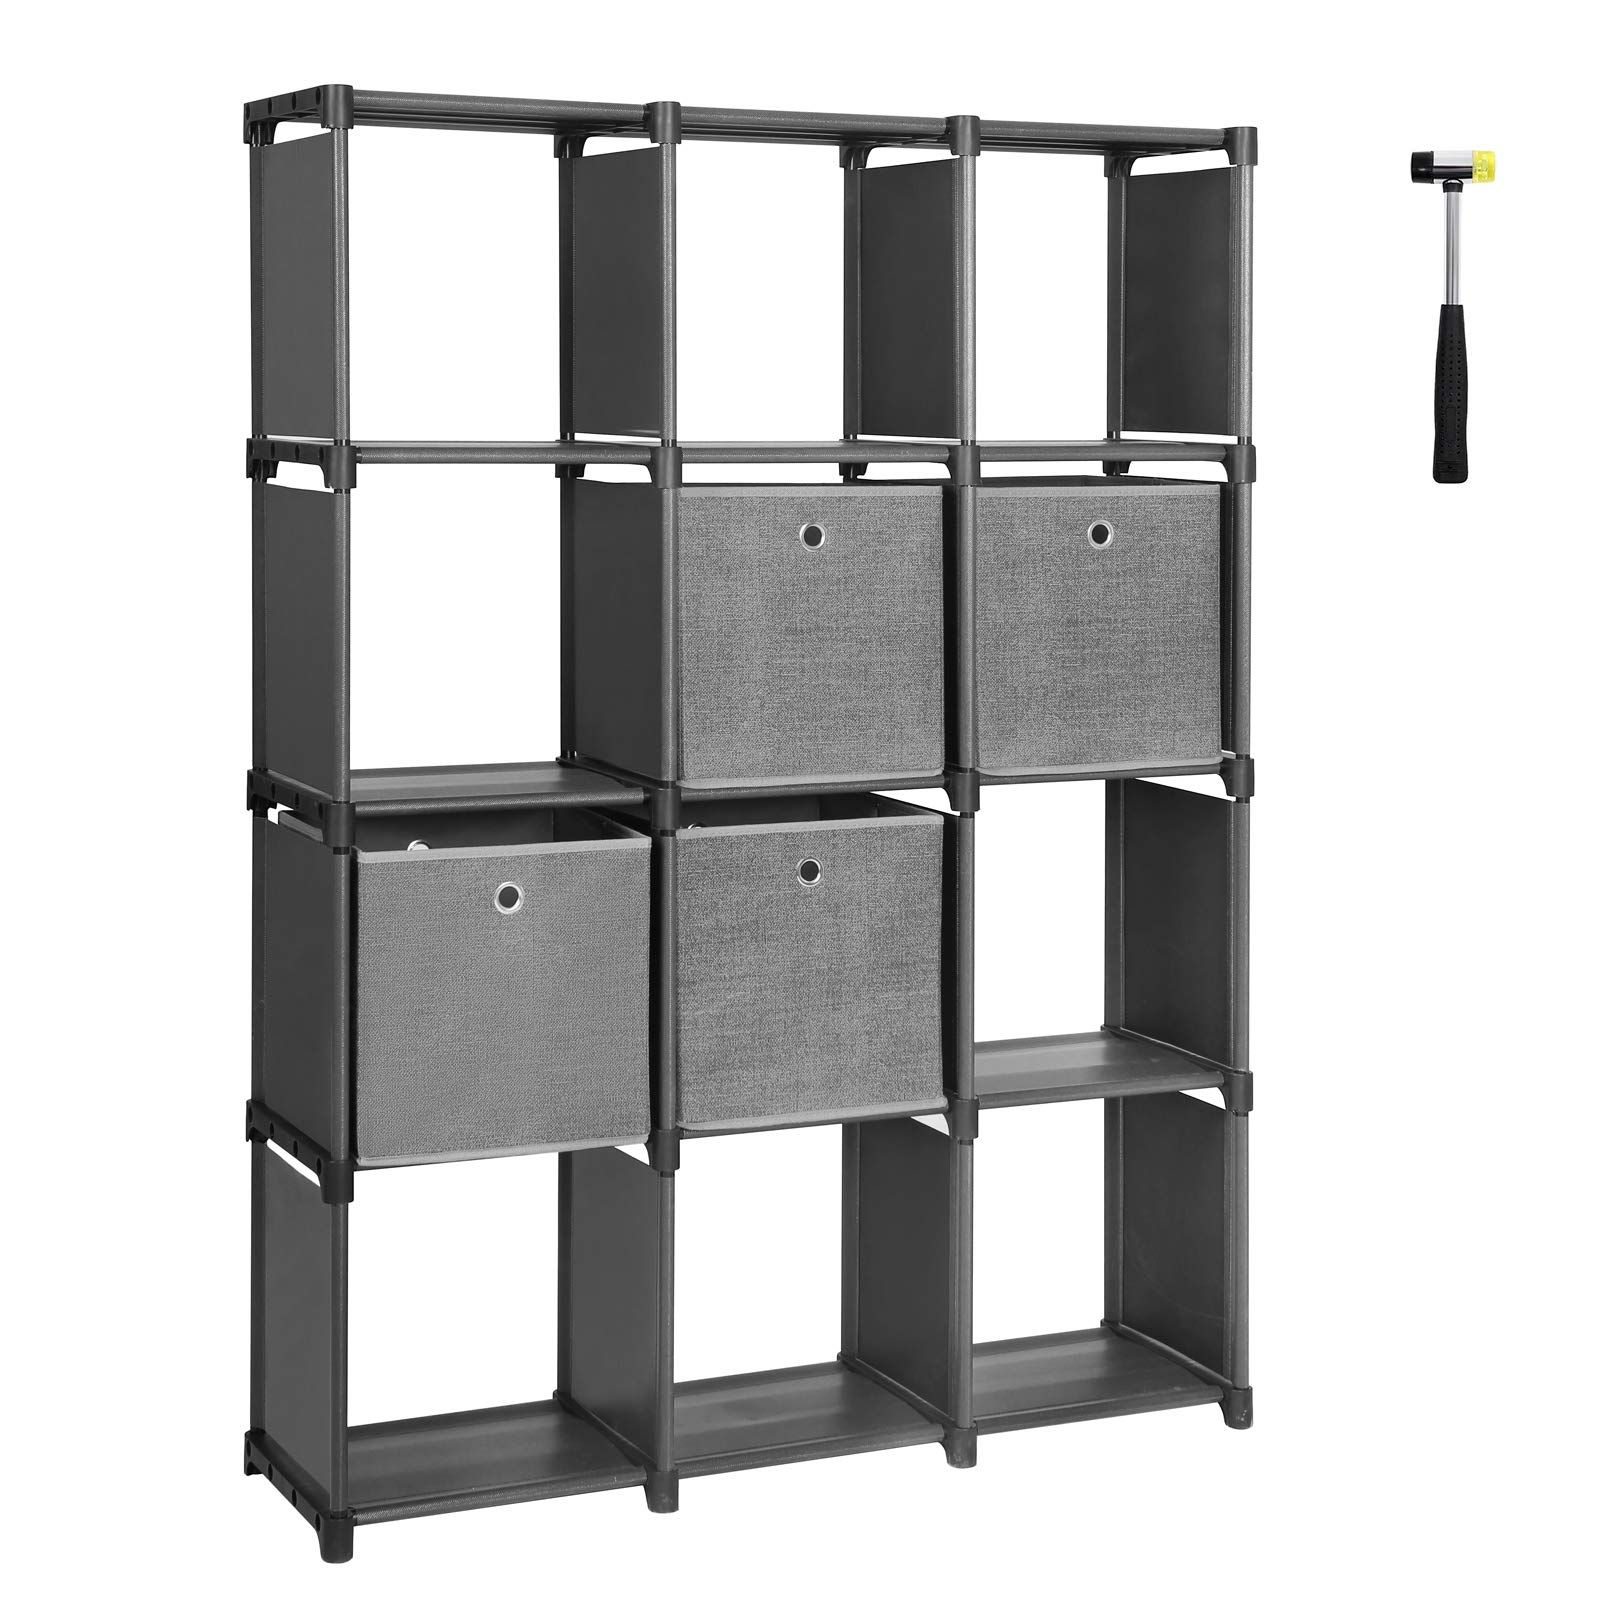 Songmics Diy Cube Storage Unit With Storage Boxes 12 Cubes Multifunctional Book Shelves And Shoe Rack Modular S Diy Cube Storage Cube Storage Unit Cube Storage